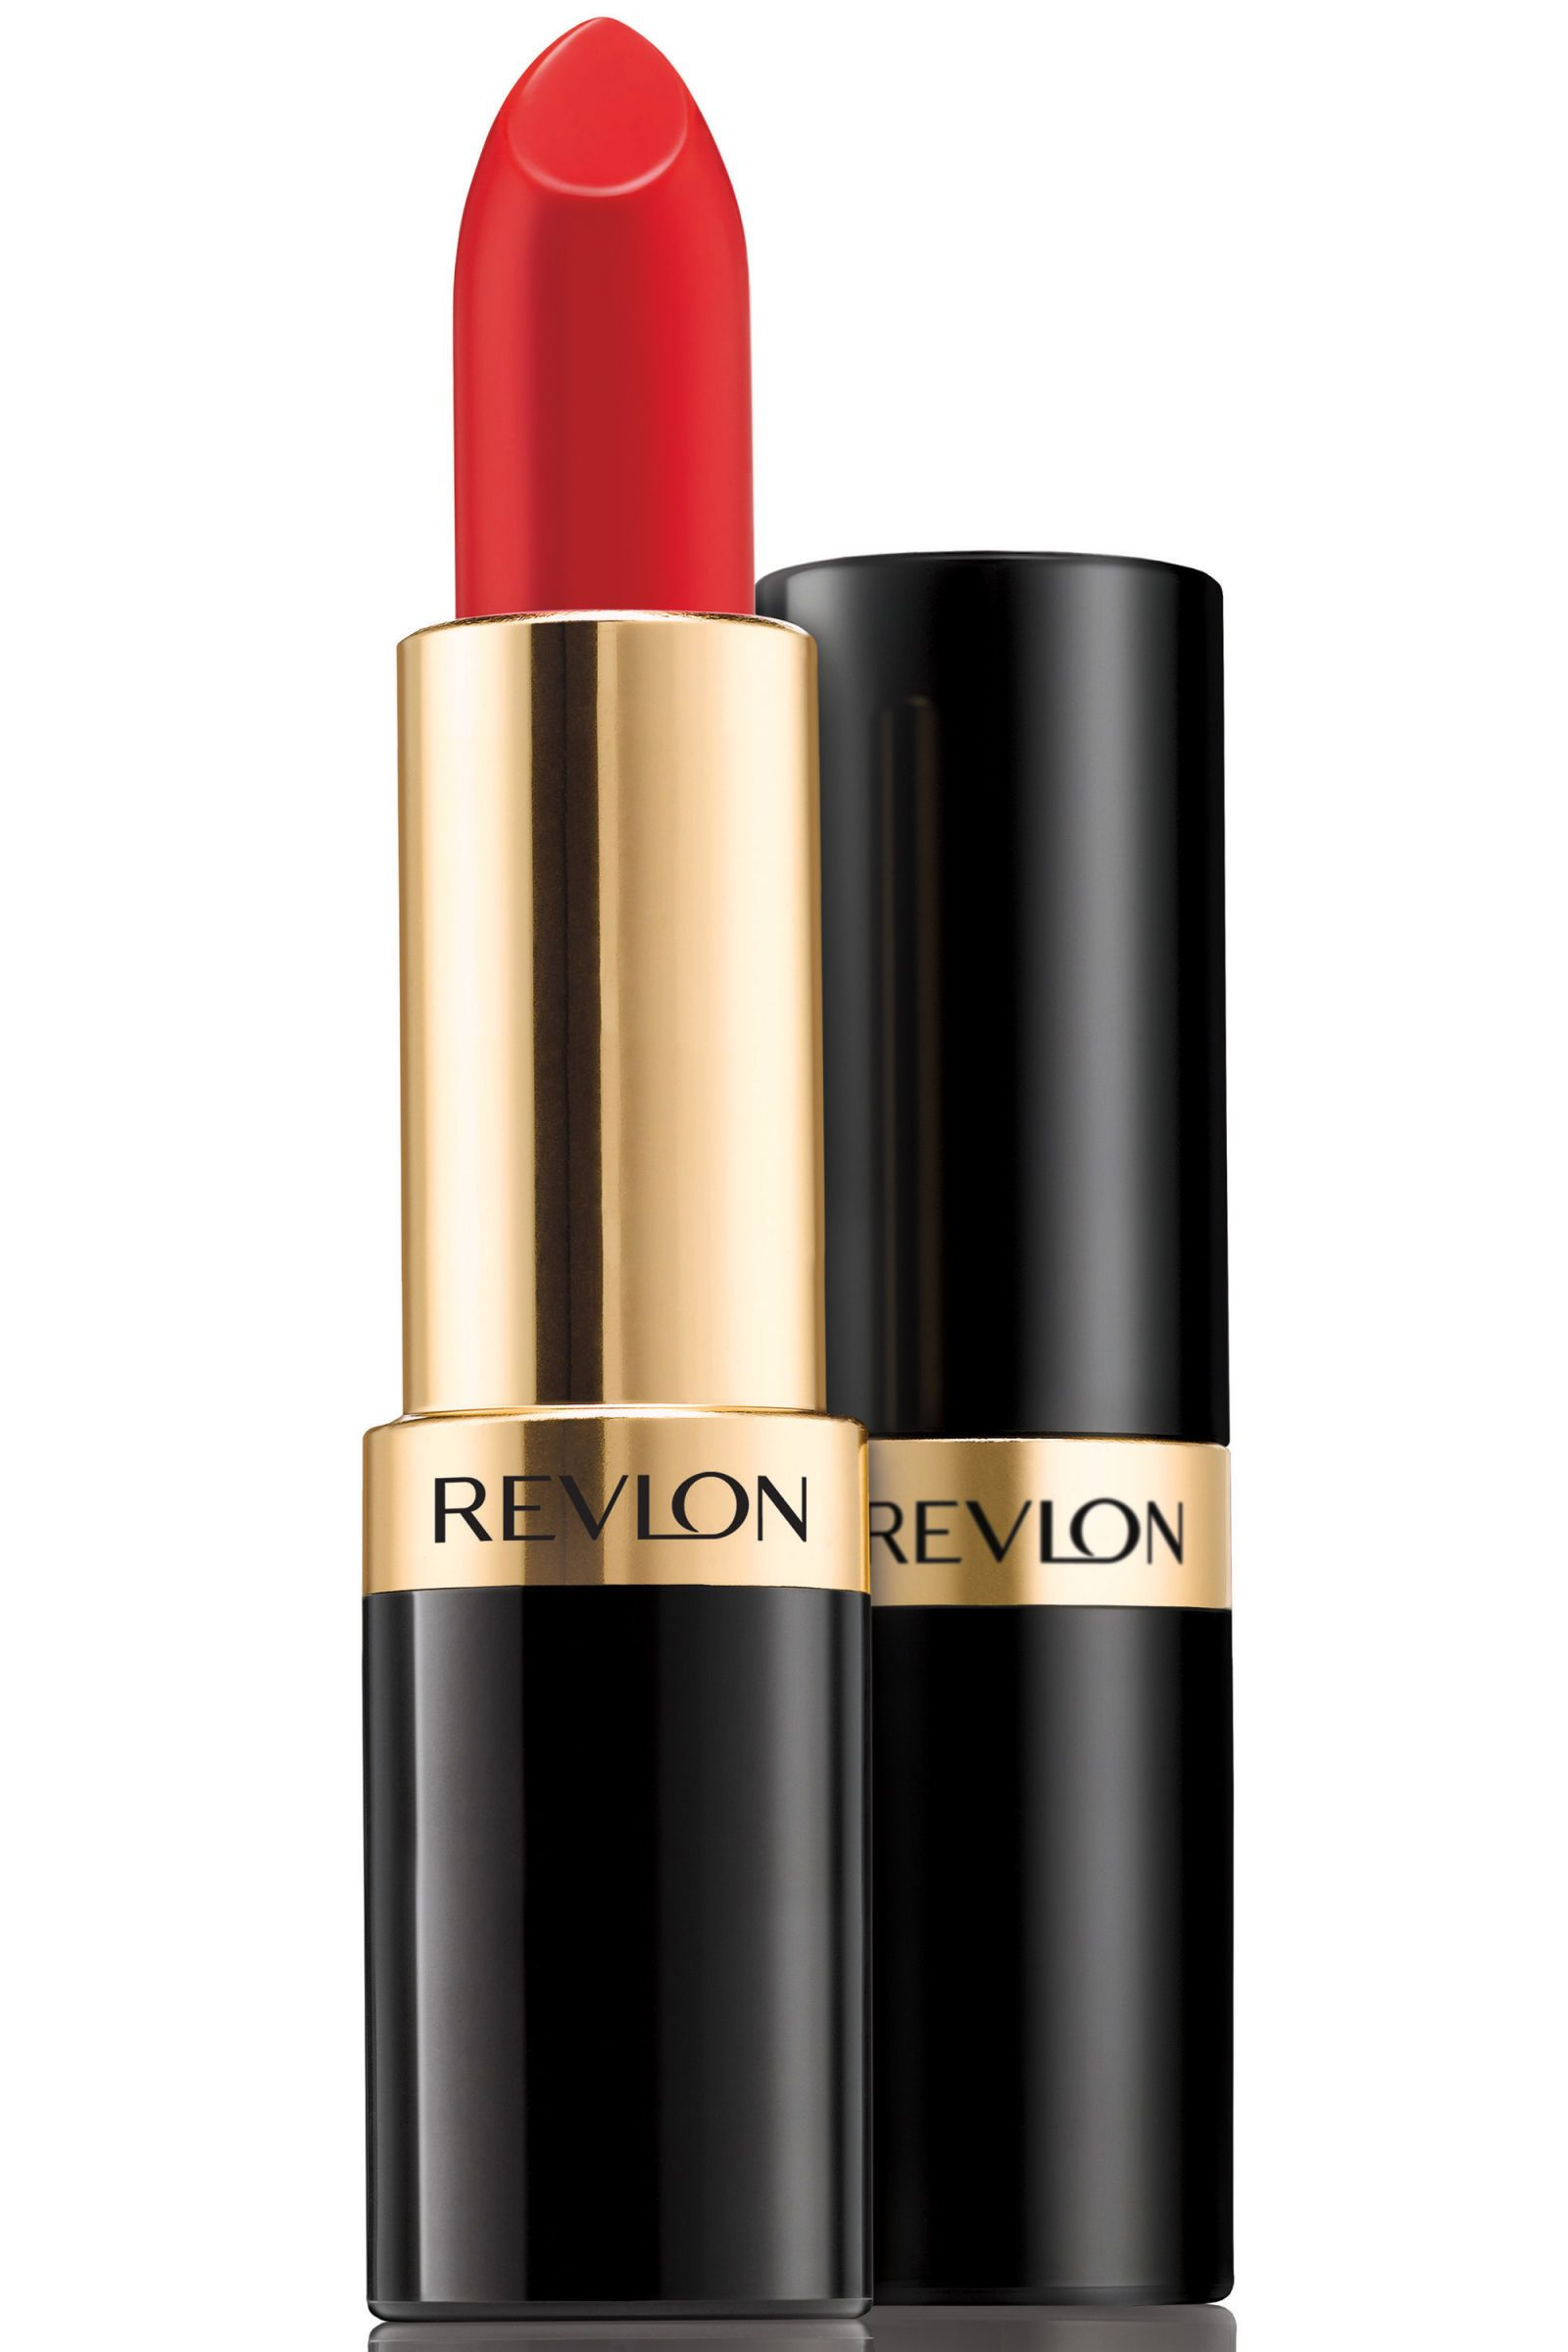 die besten 25 revlon roter lippenstift ideen auf pinterest revlon lippen butter revlon matt. Black Bedroom Furniture Sets. Home Design Ideas